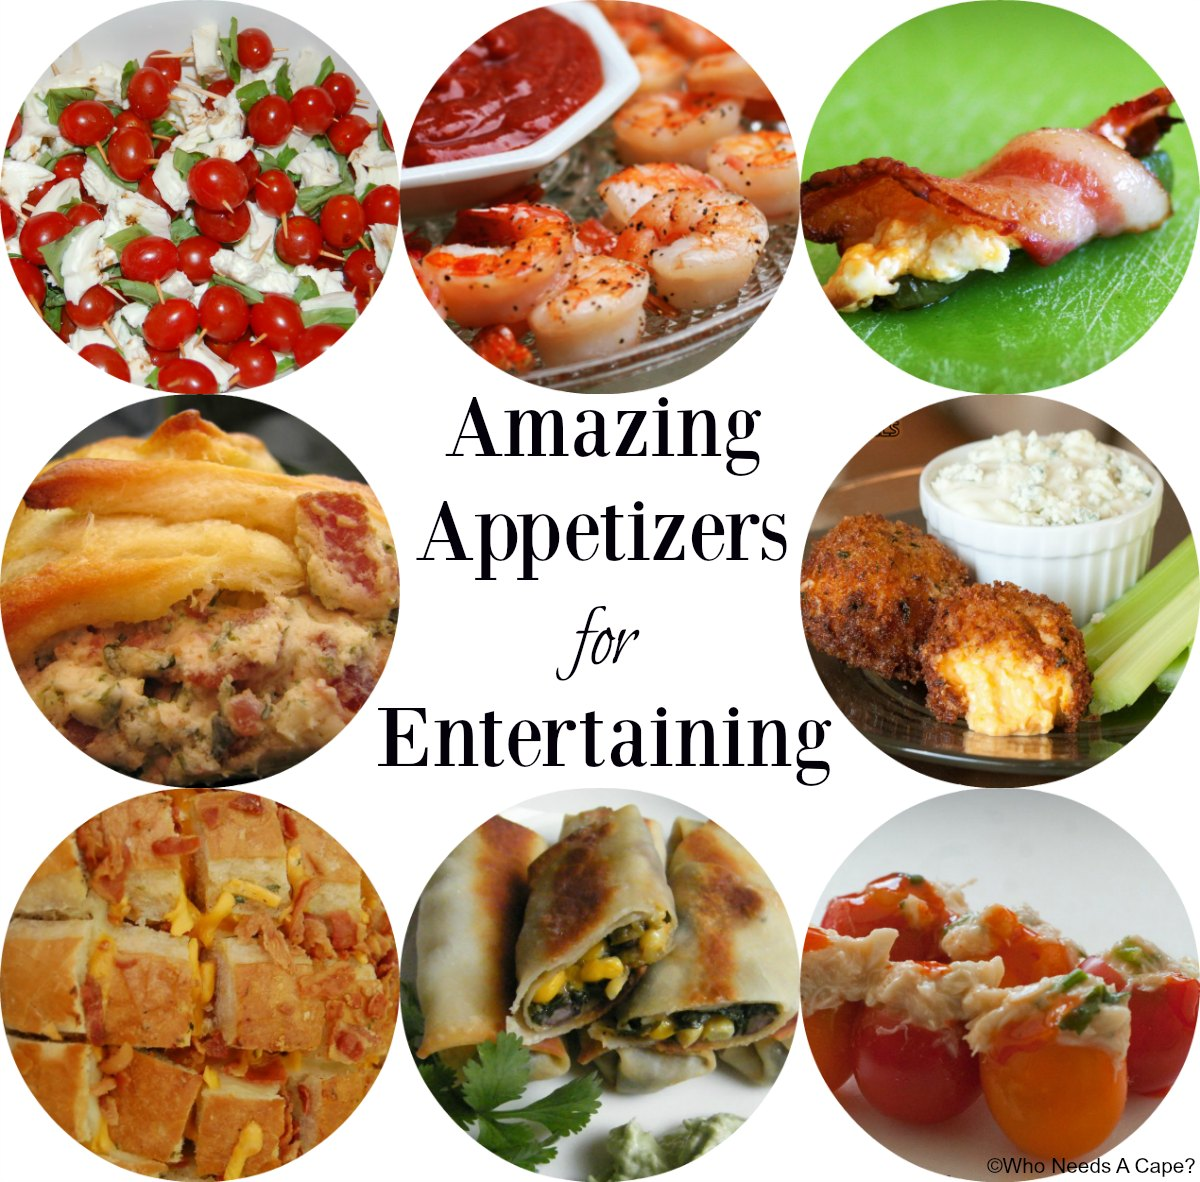 This collection of Amazing Appetizers showcases some of the best party food from Who Needs A Cape? Parties, tailgating or holidays we've got you covered.